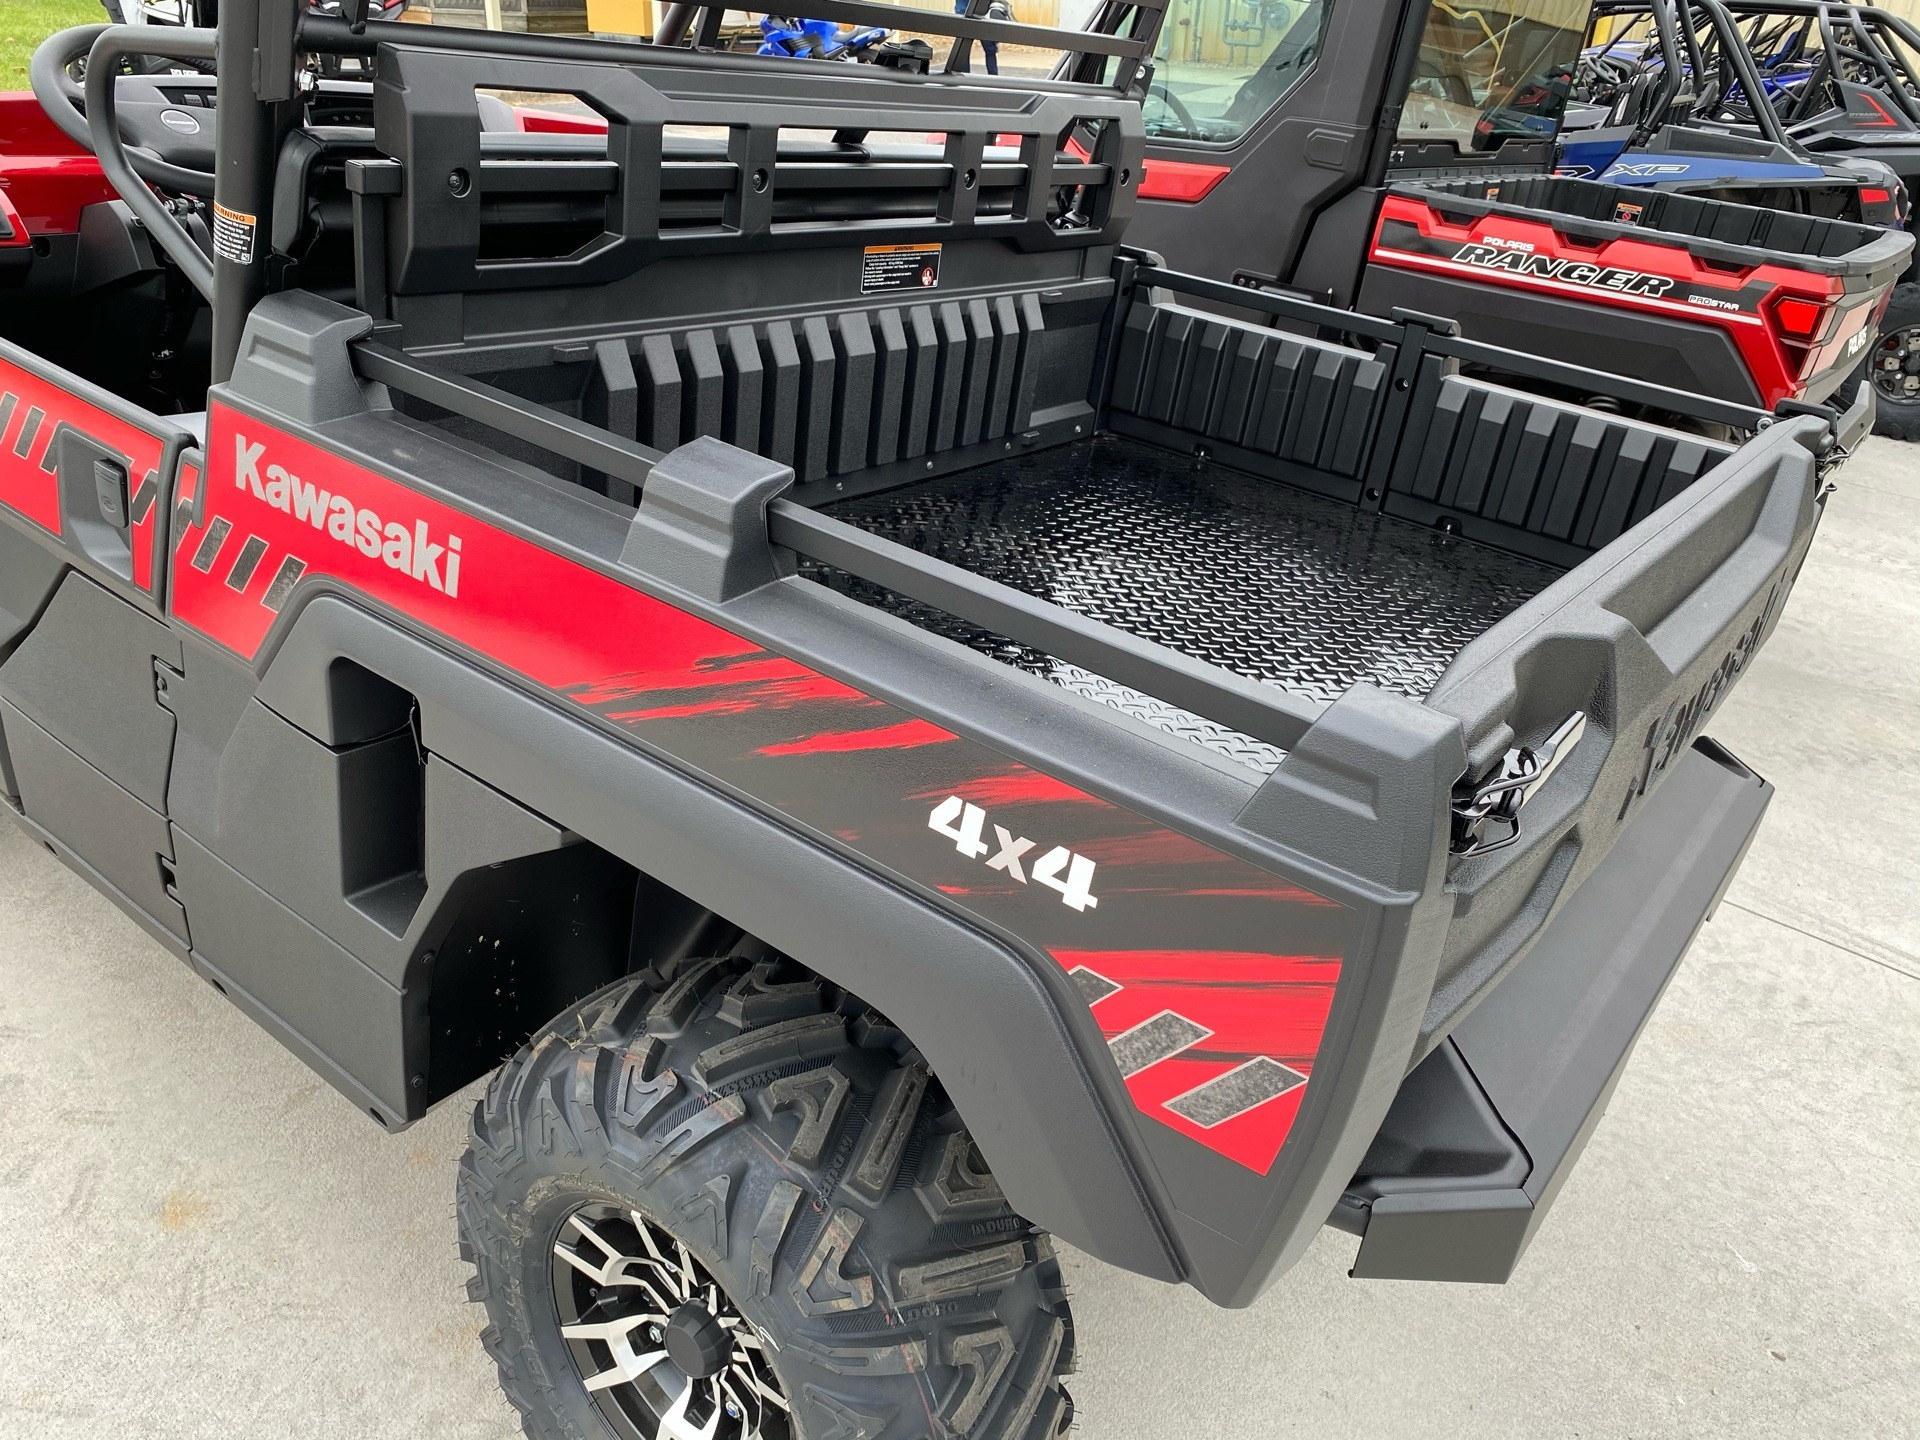 2020 Kawasaki Mule PRO-FXR in Statesville, North Carolina - Photo 6